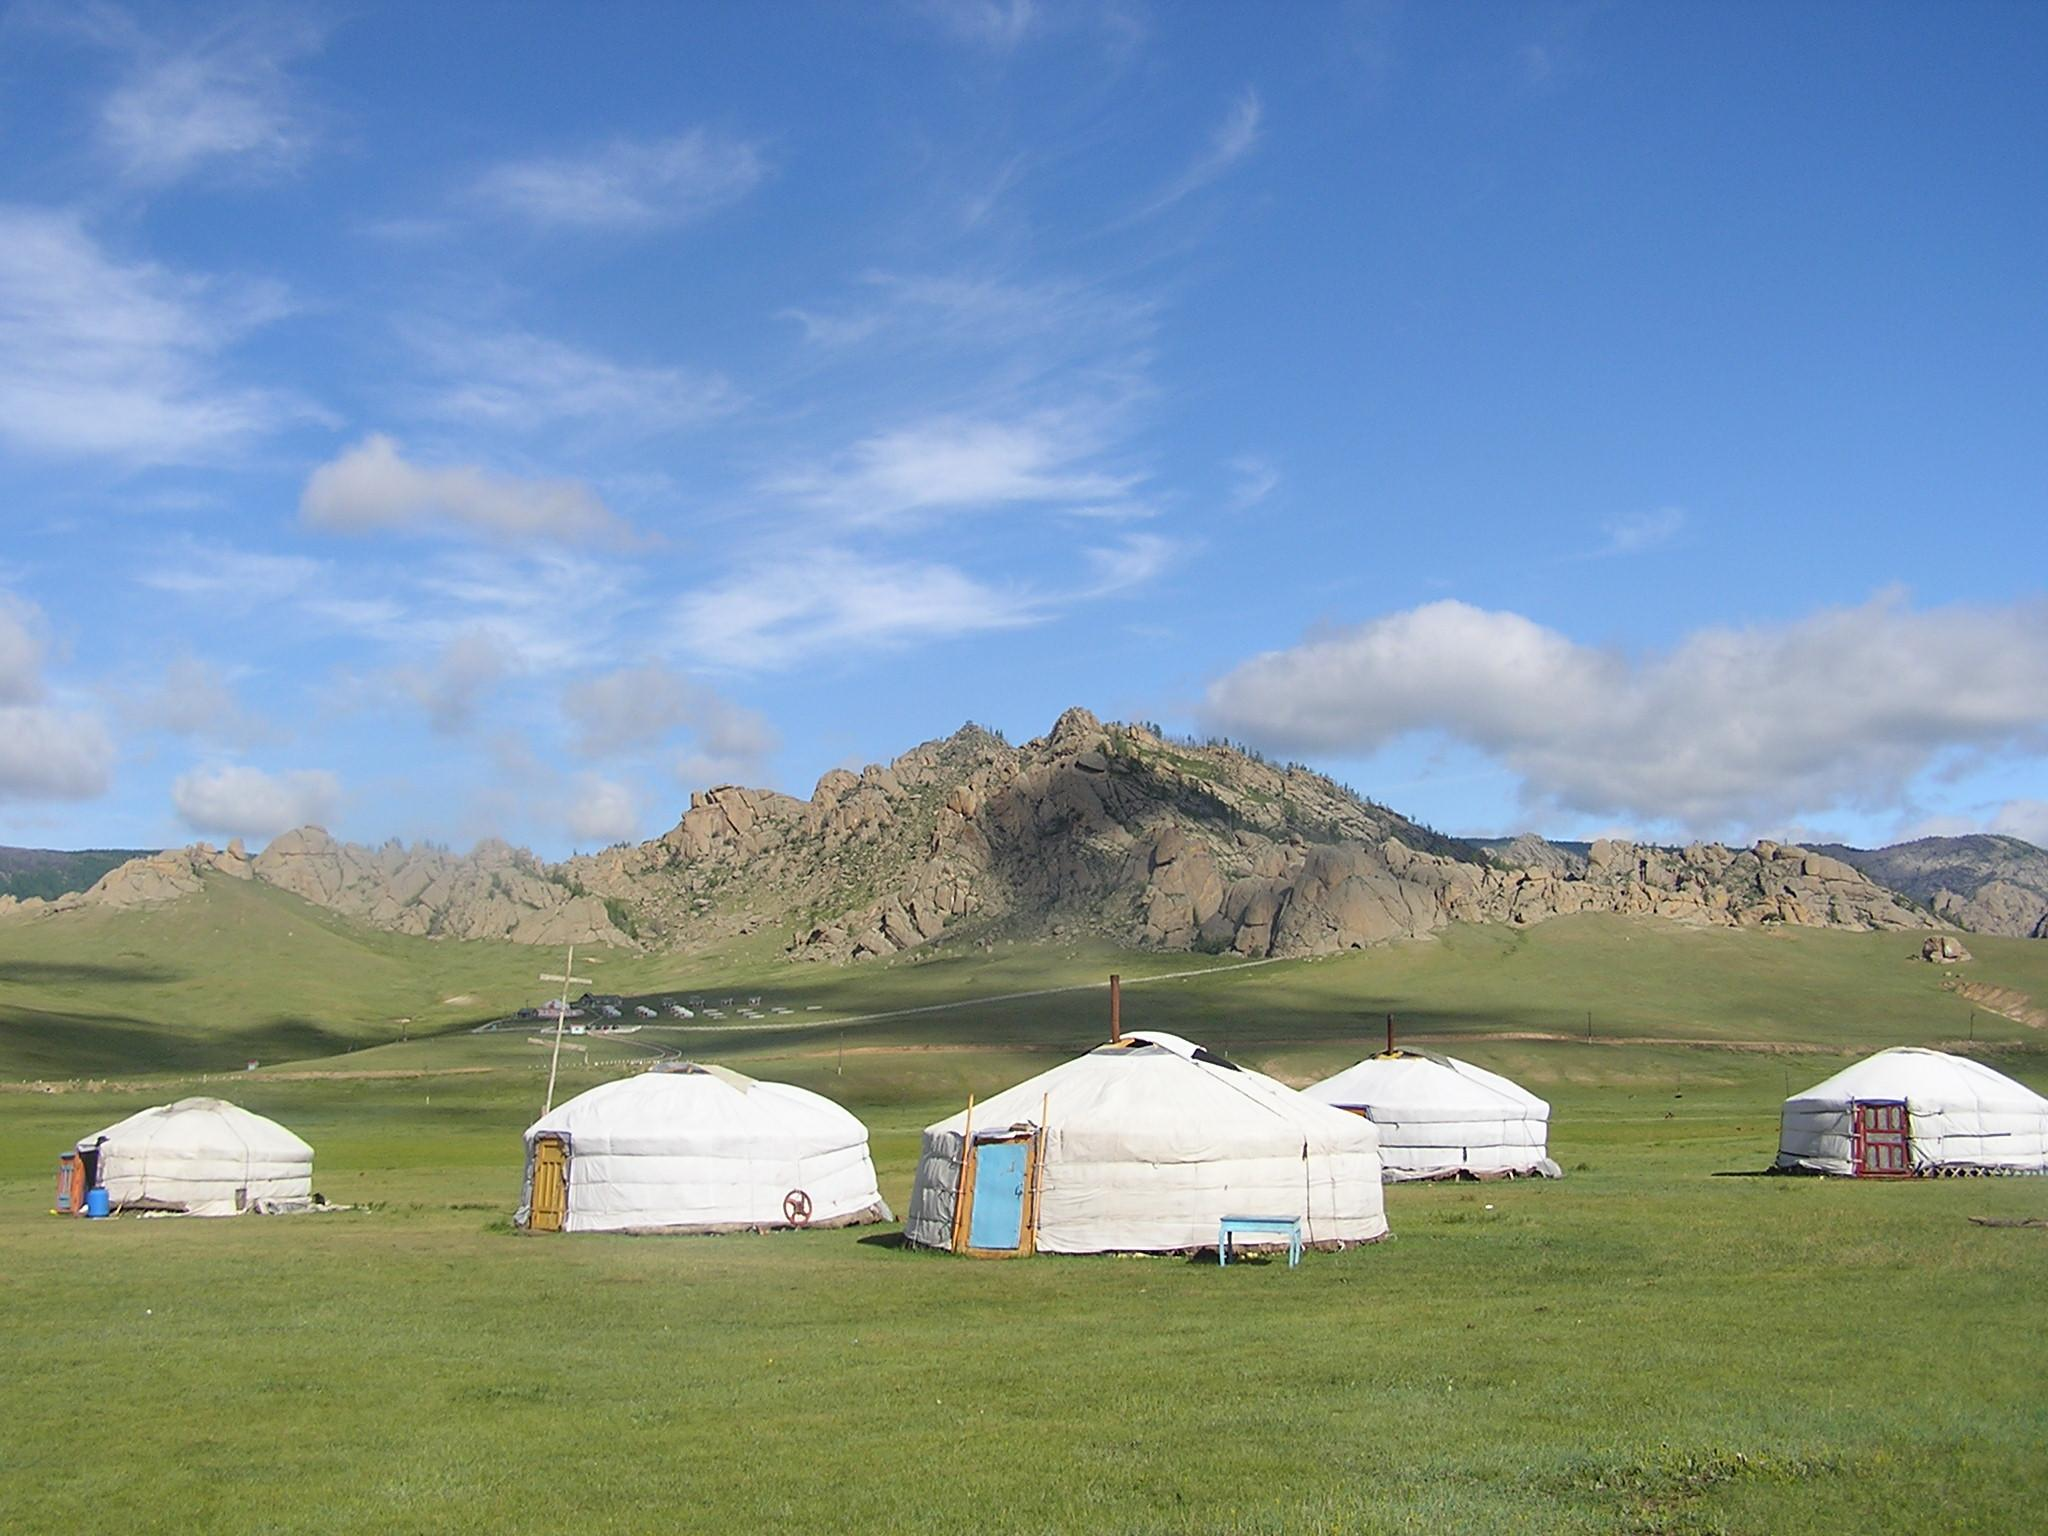 Terelj National Park is where Projects Abroad volunteers will live and work with Nomads in Mongolia.